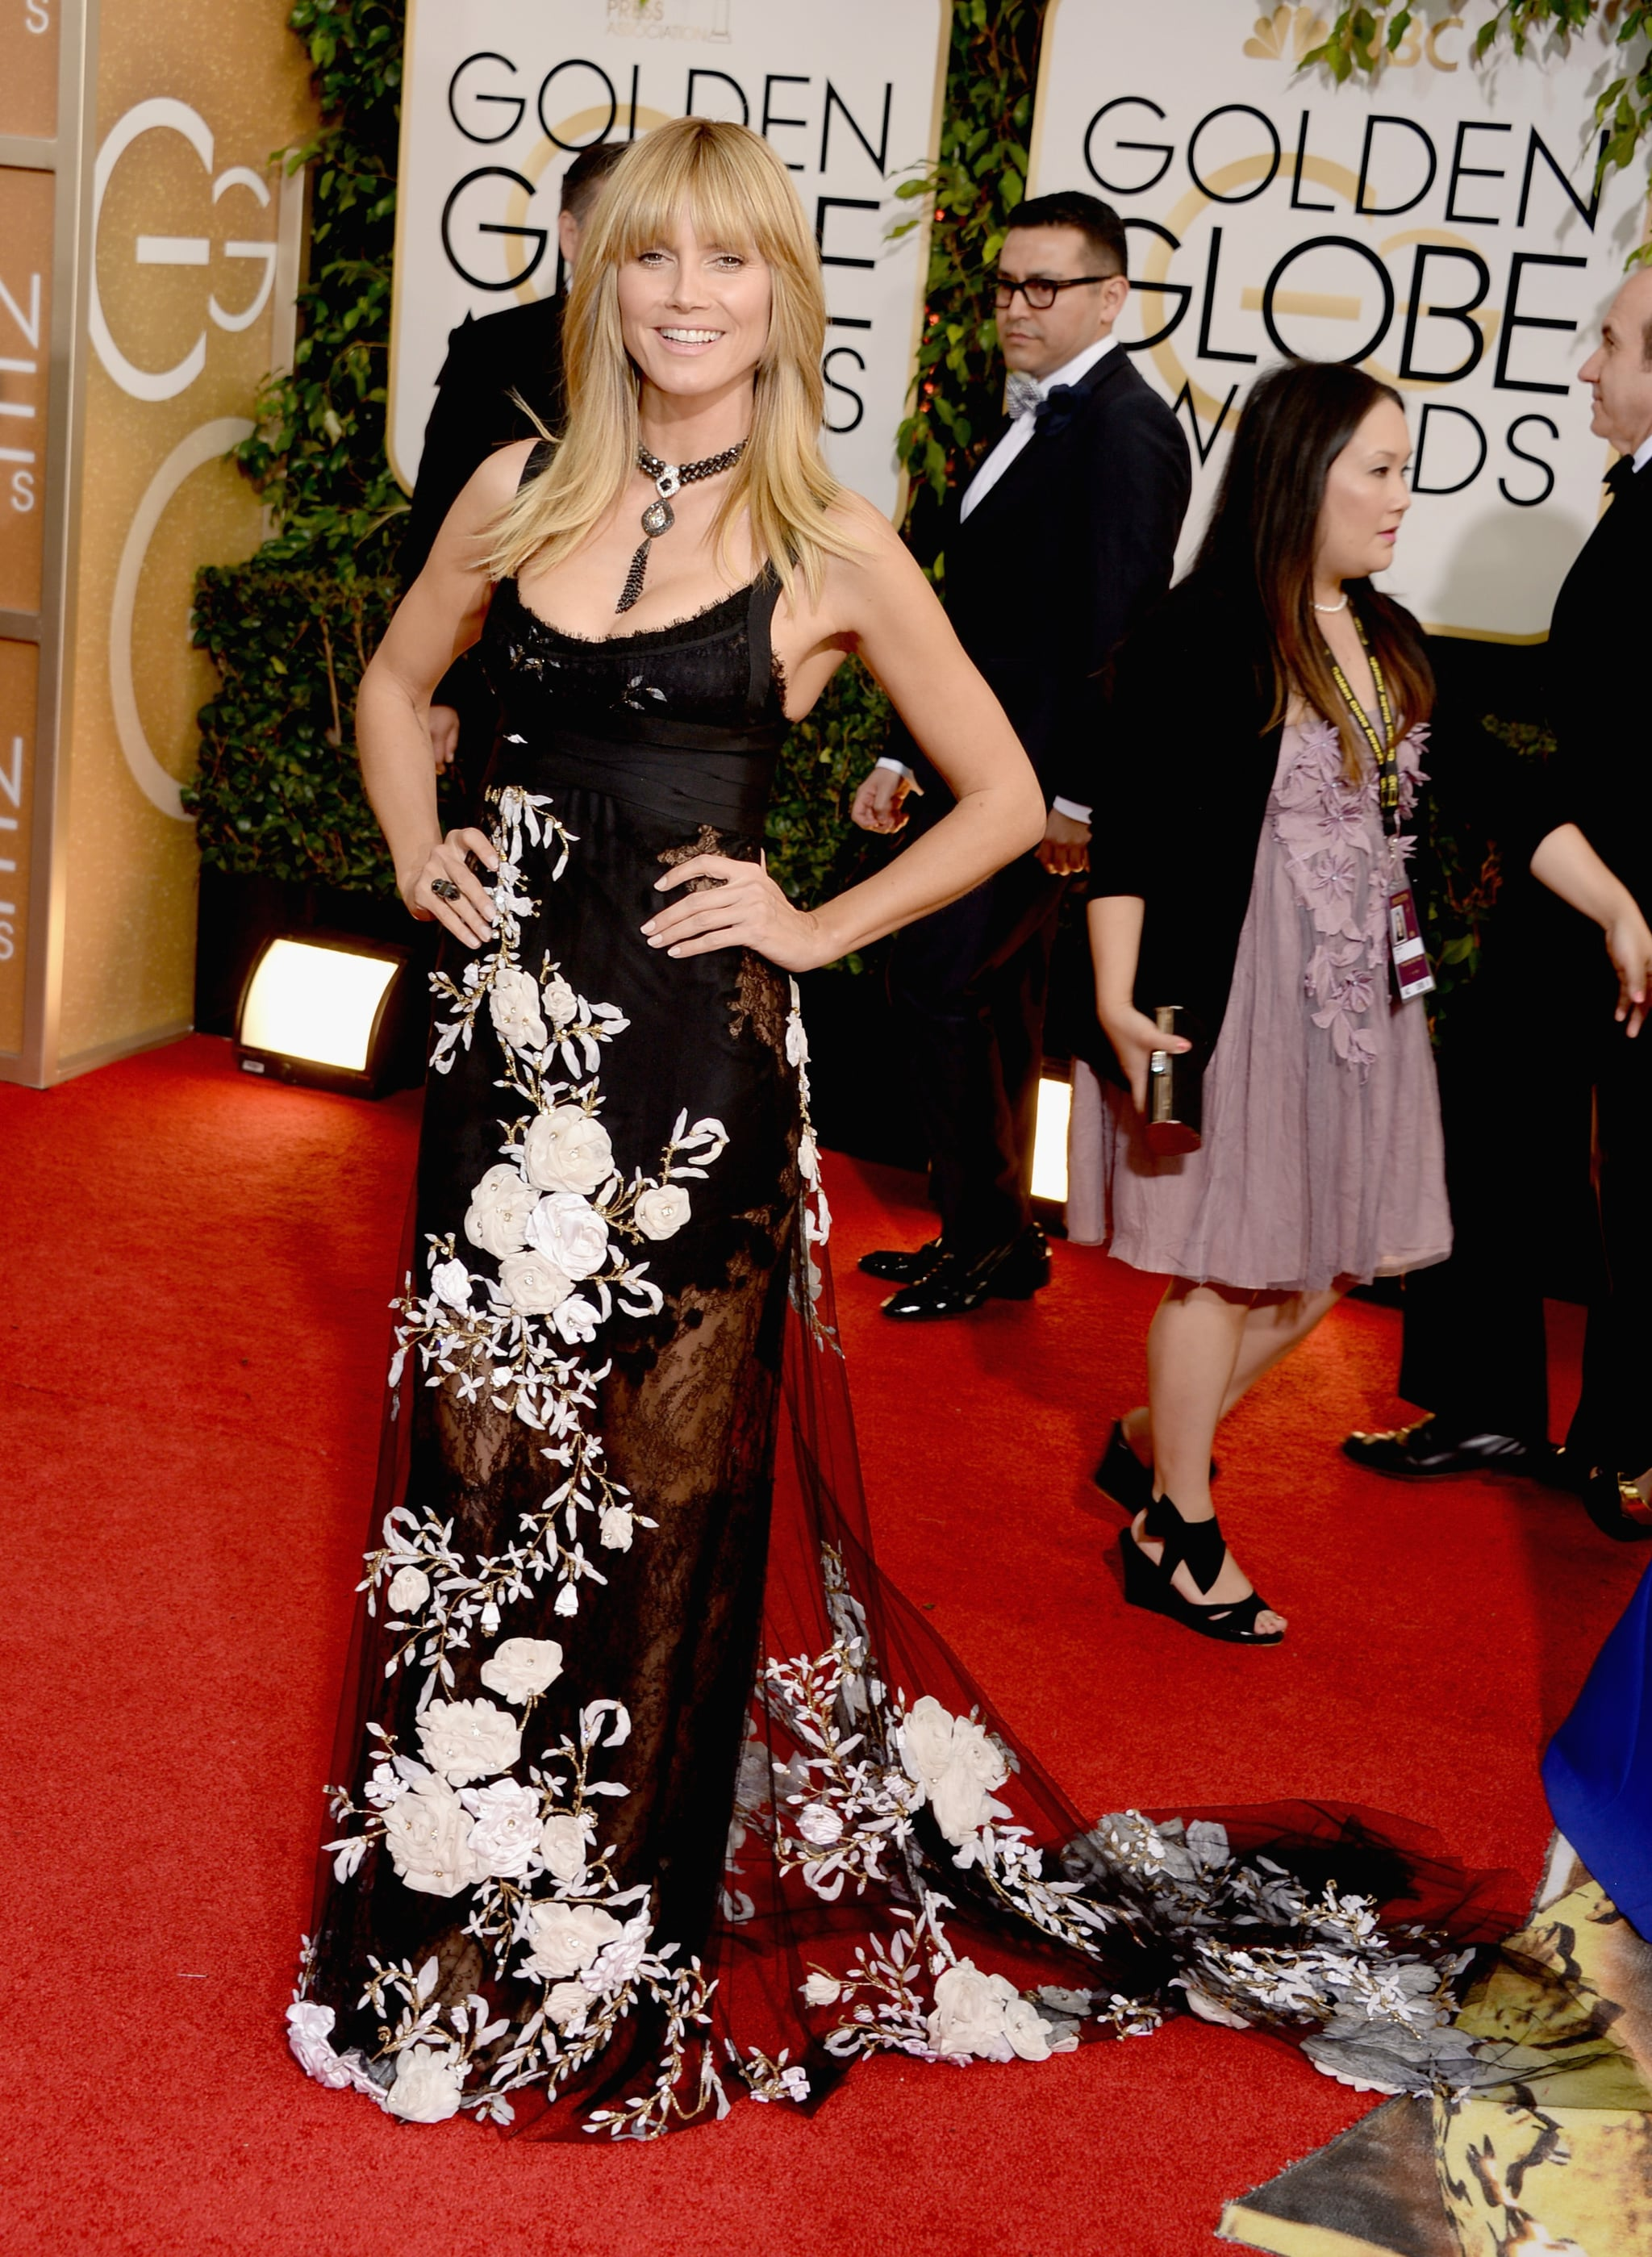 Heidi Klum wore Marchesa to the event.